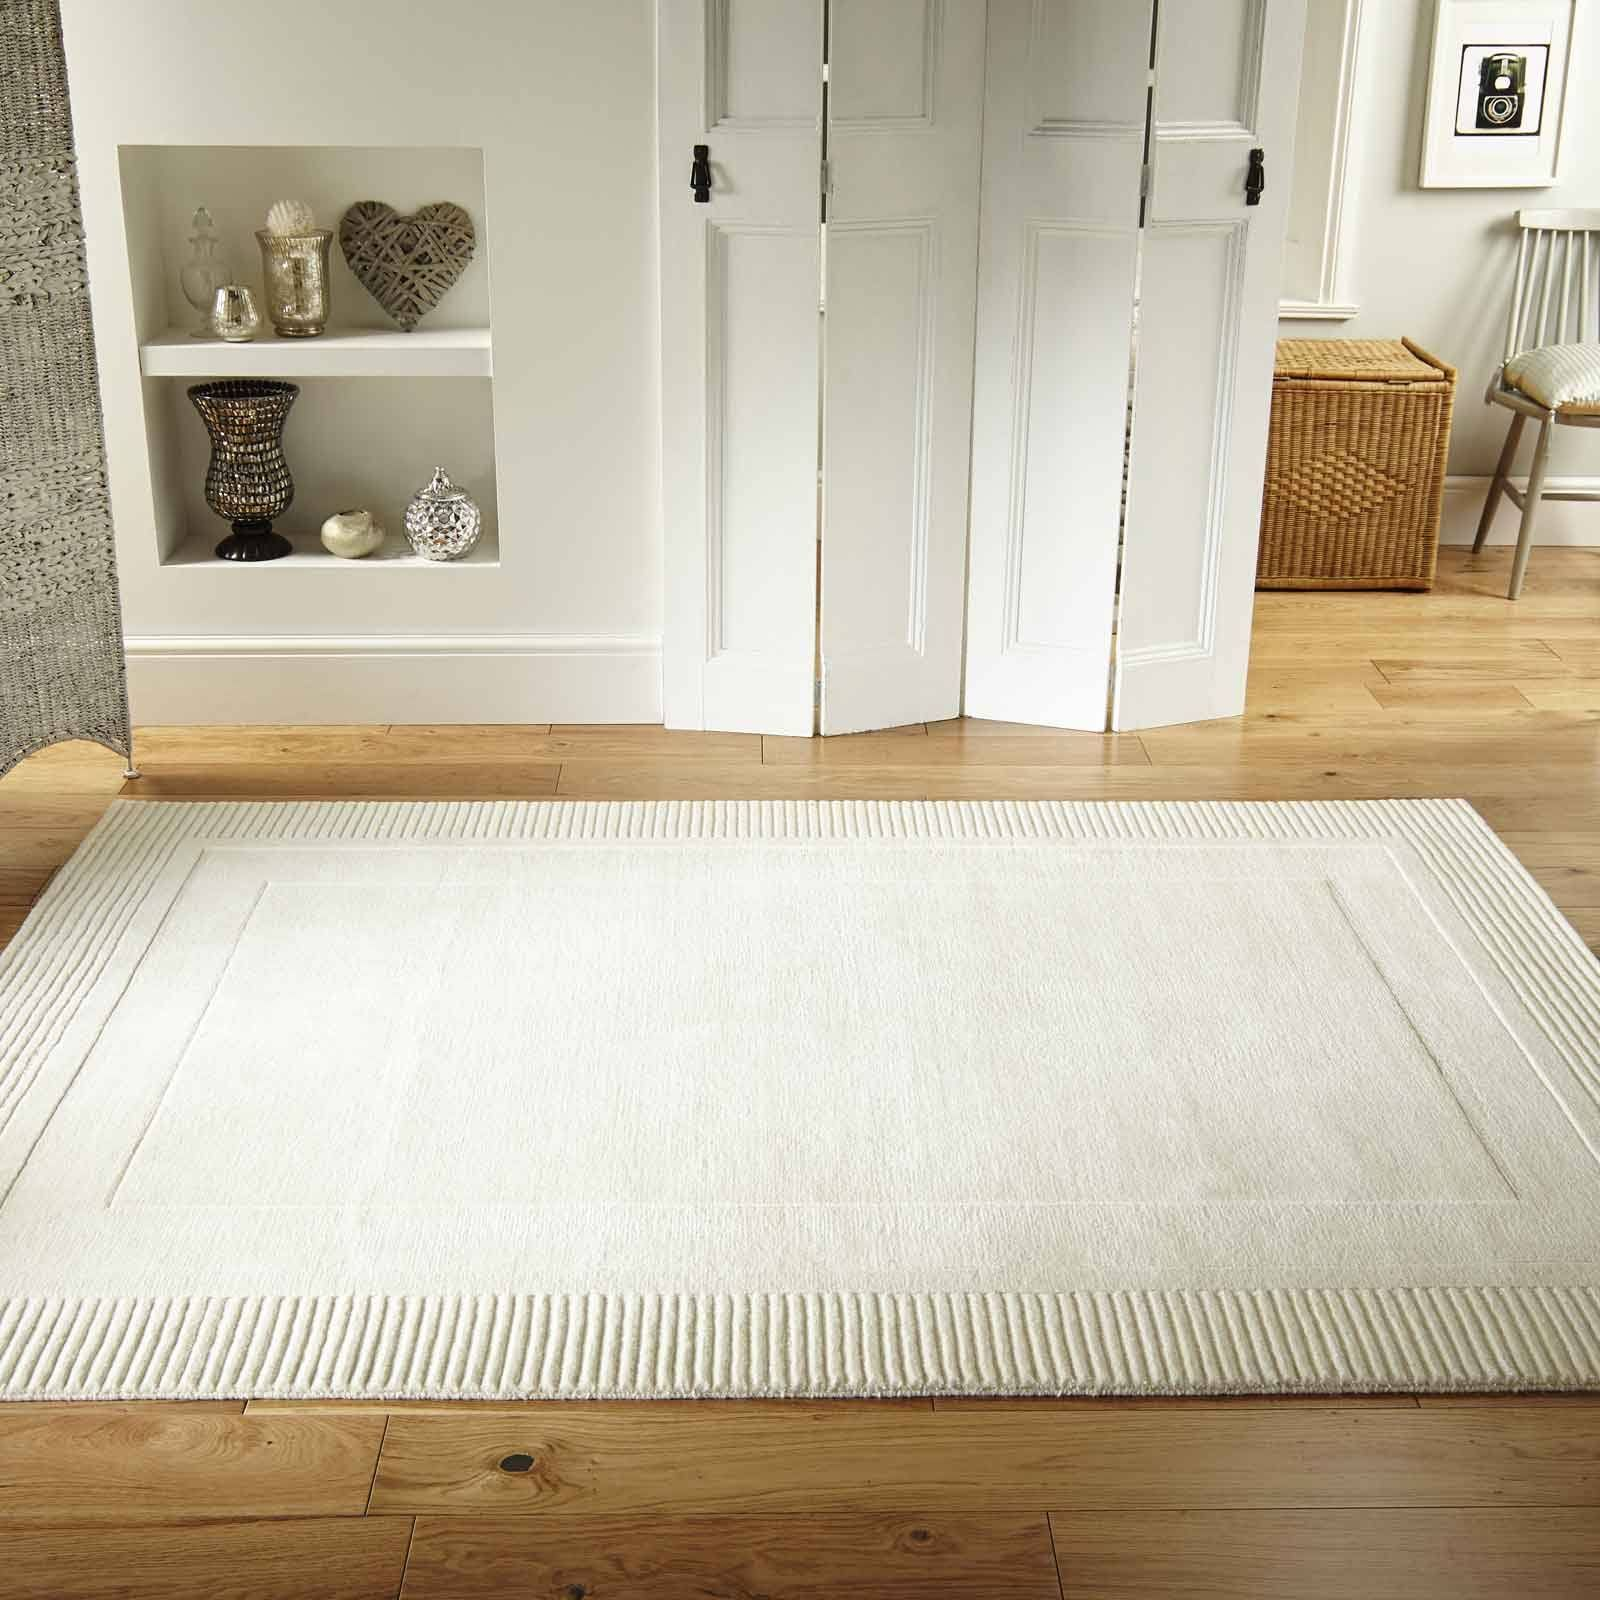 large cream rugs for sale Google Search White rug